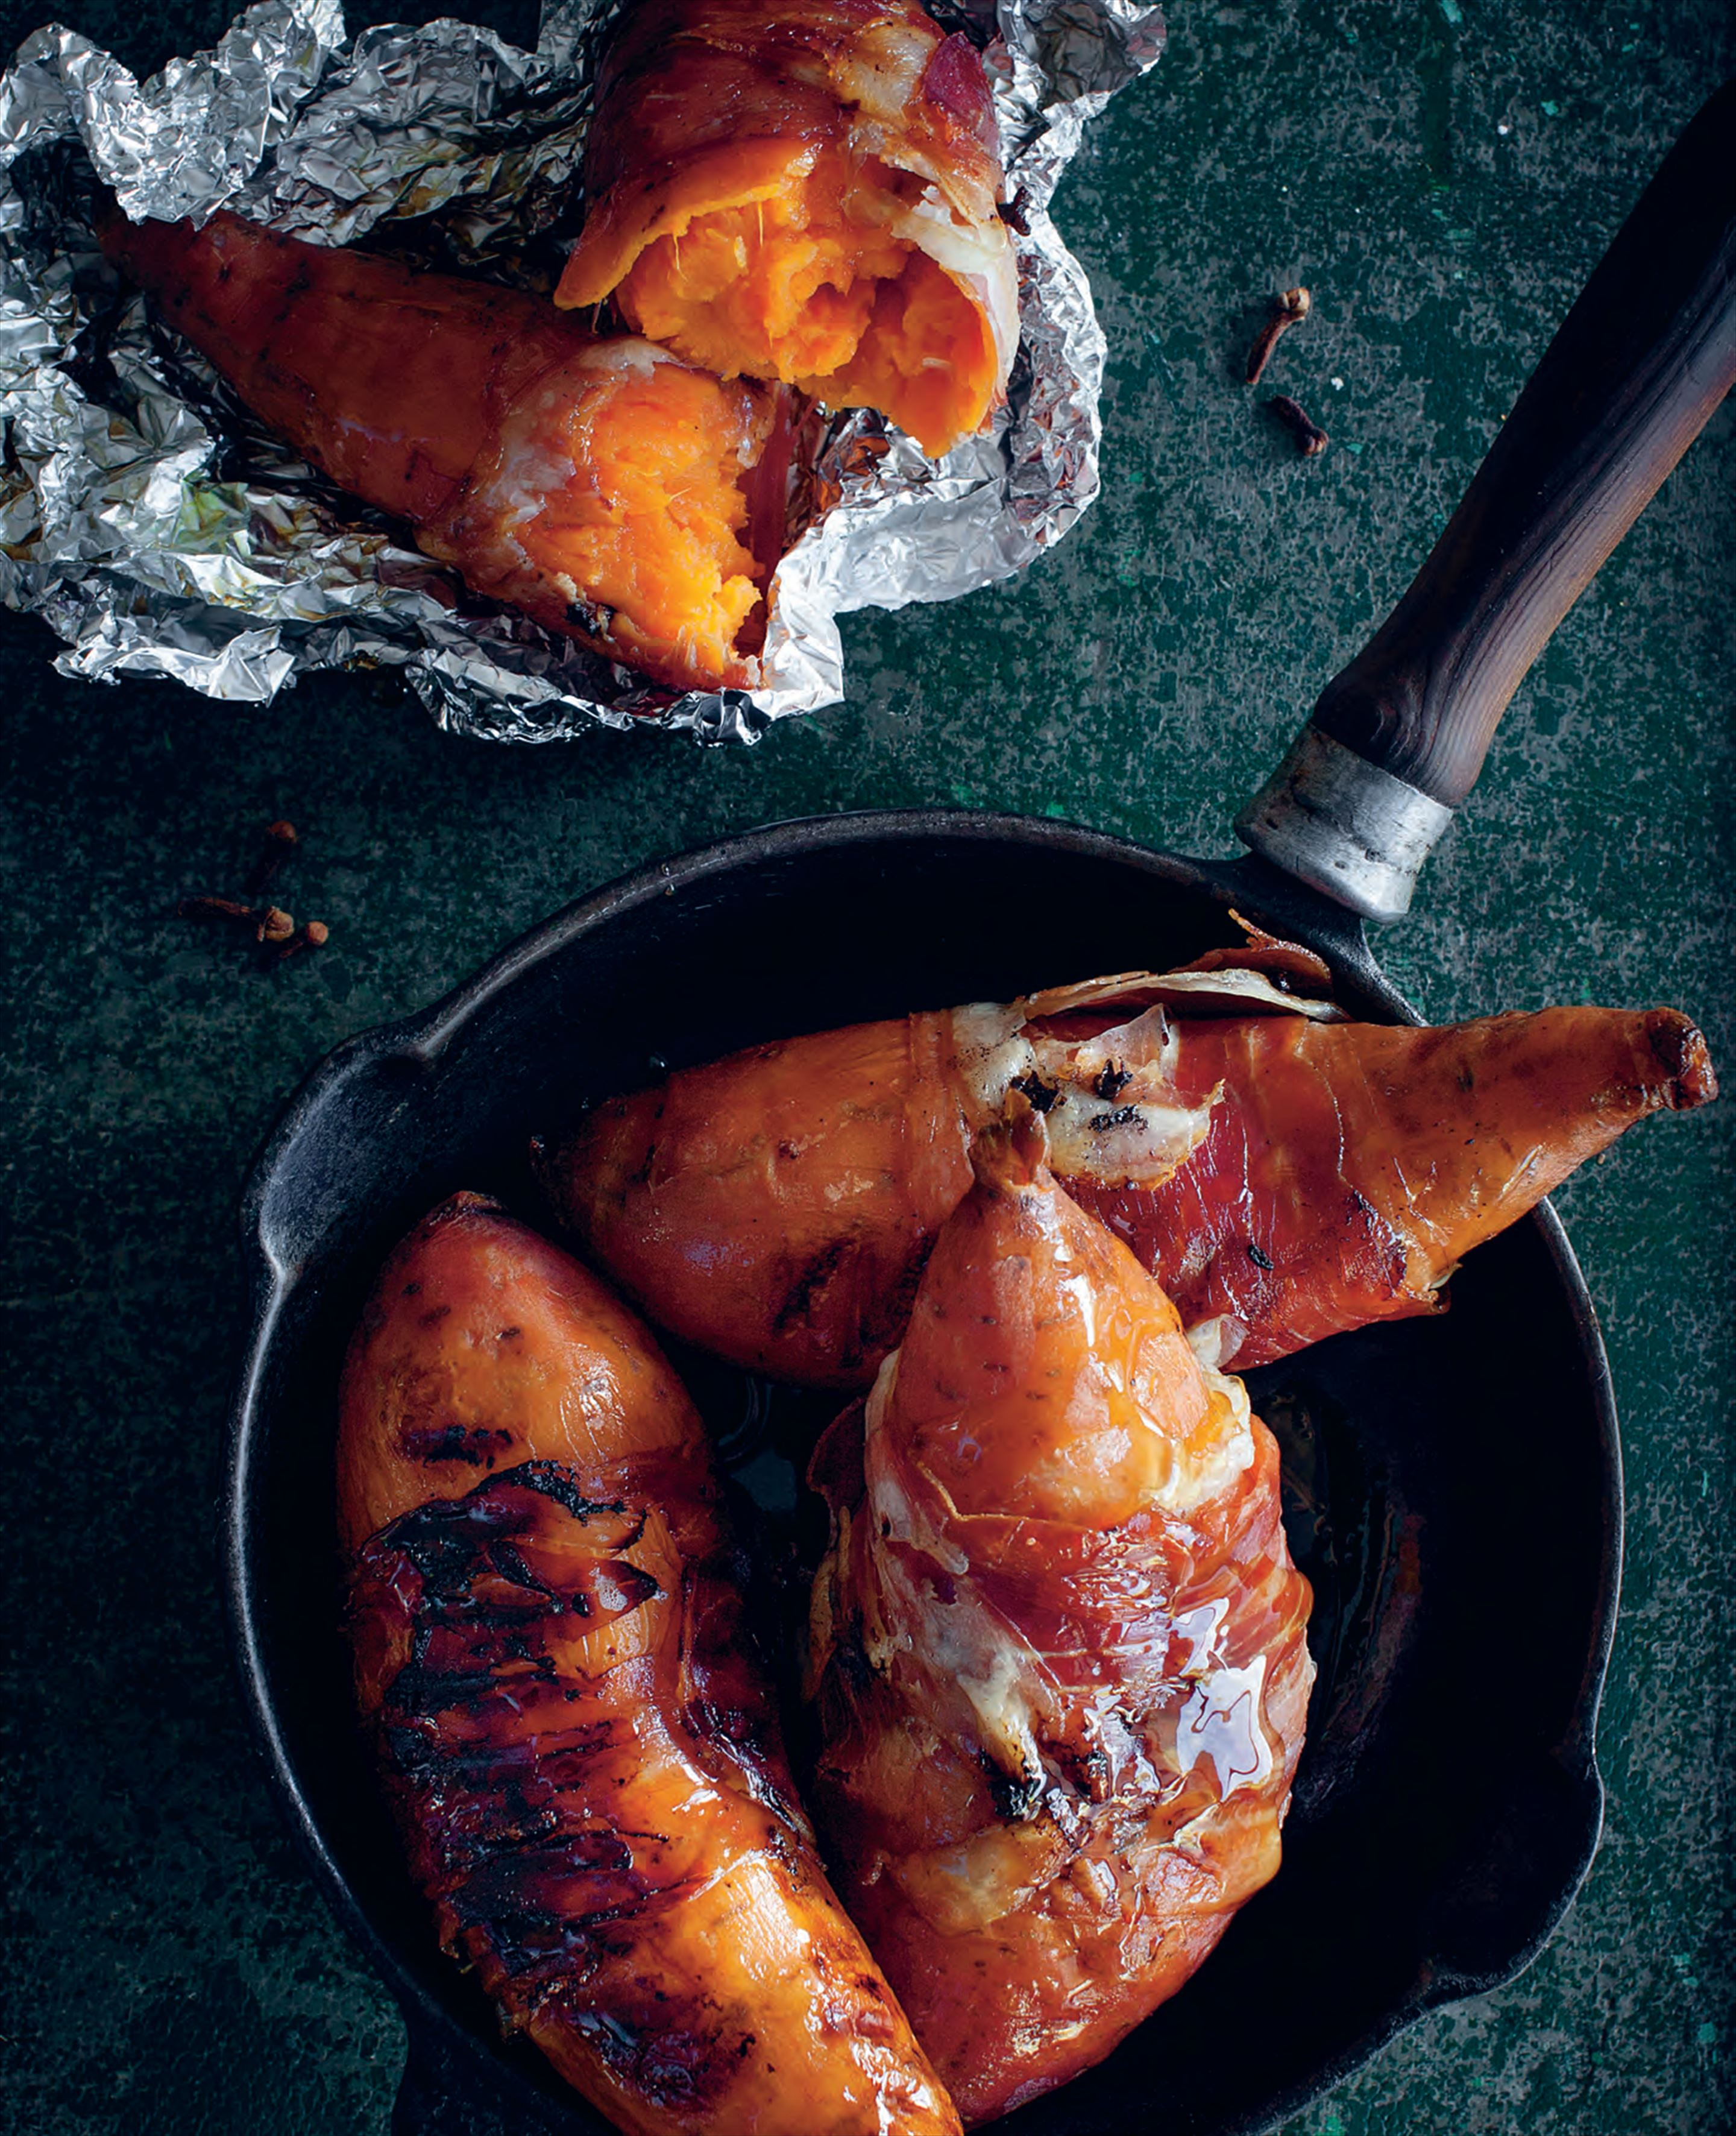 Baked sweet potatoes with speck, cloves and maple syrup